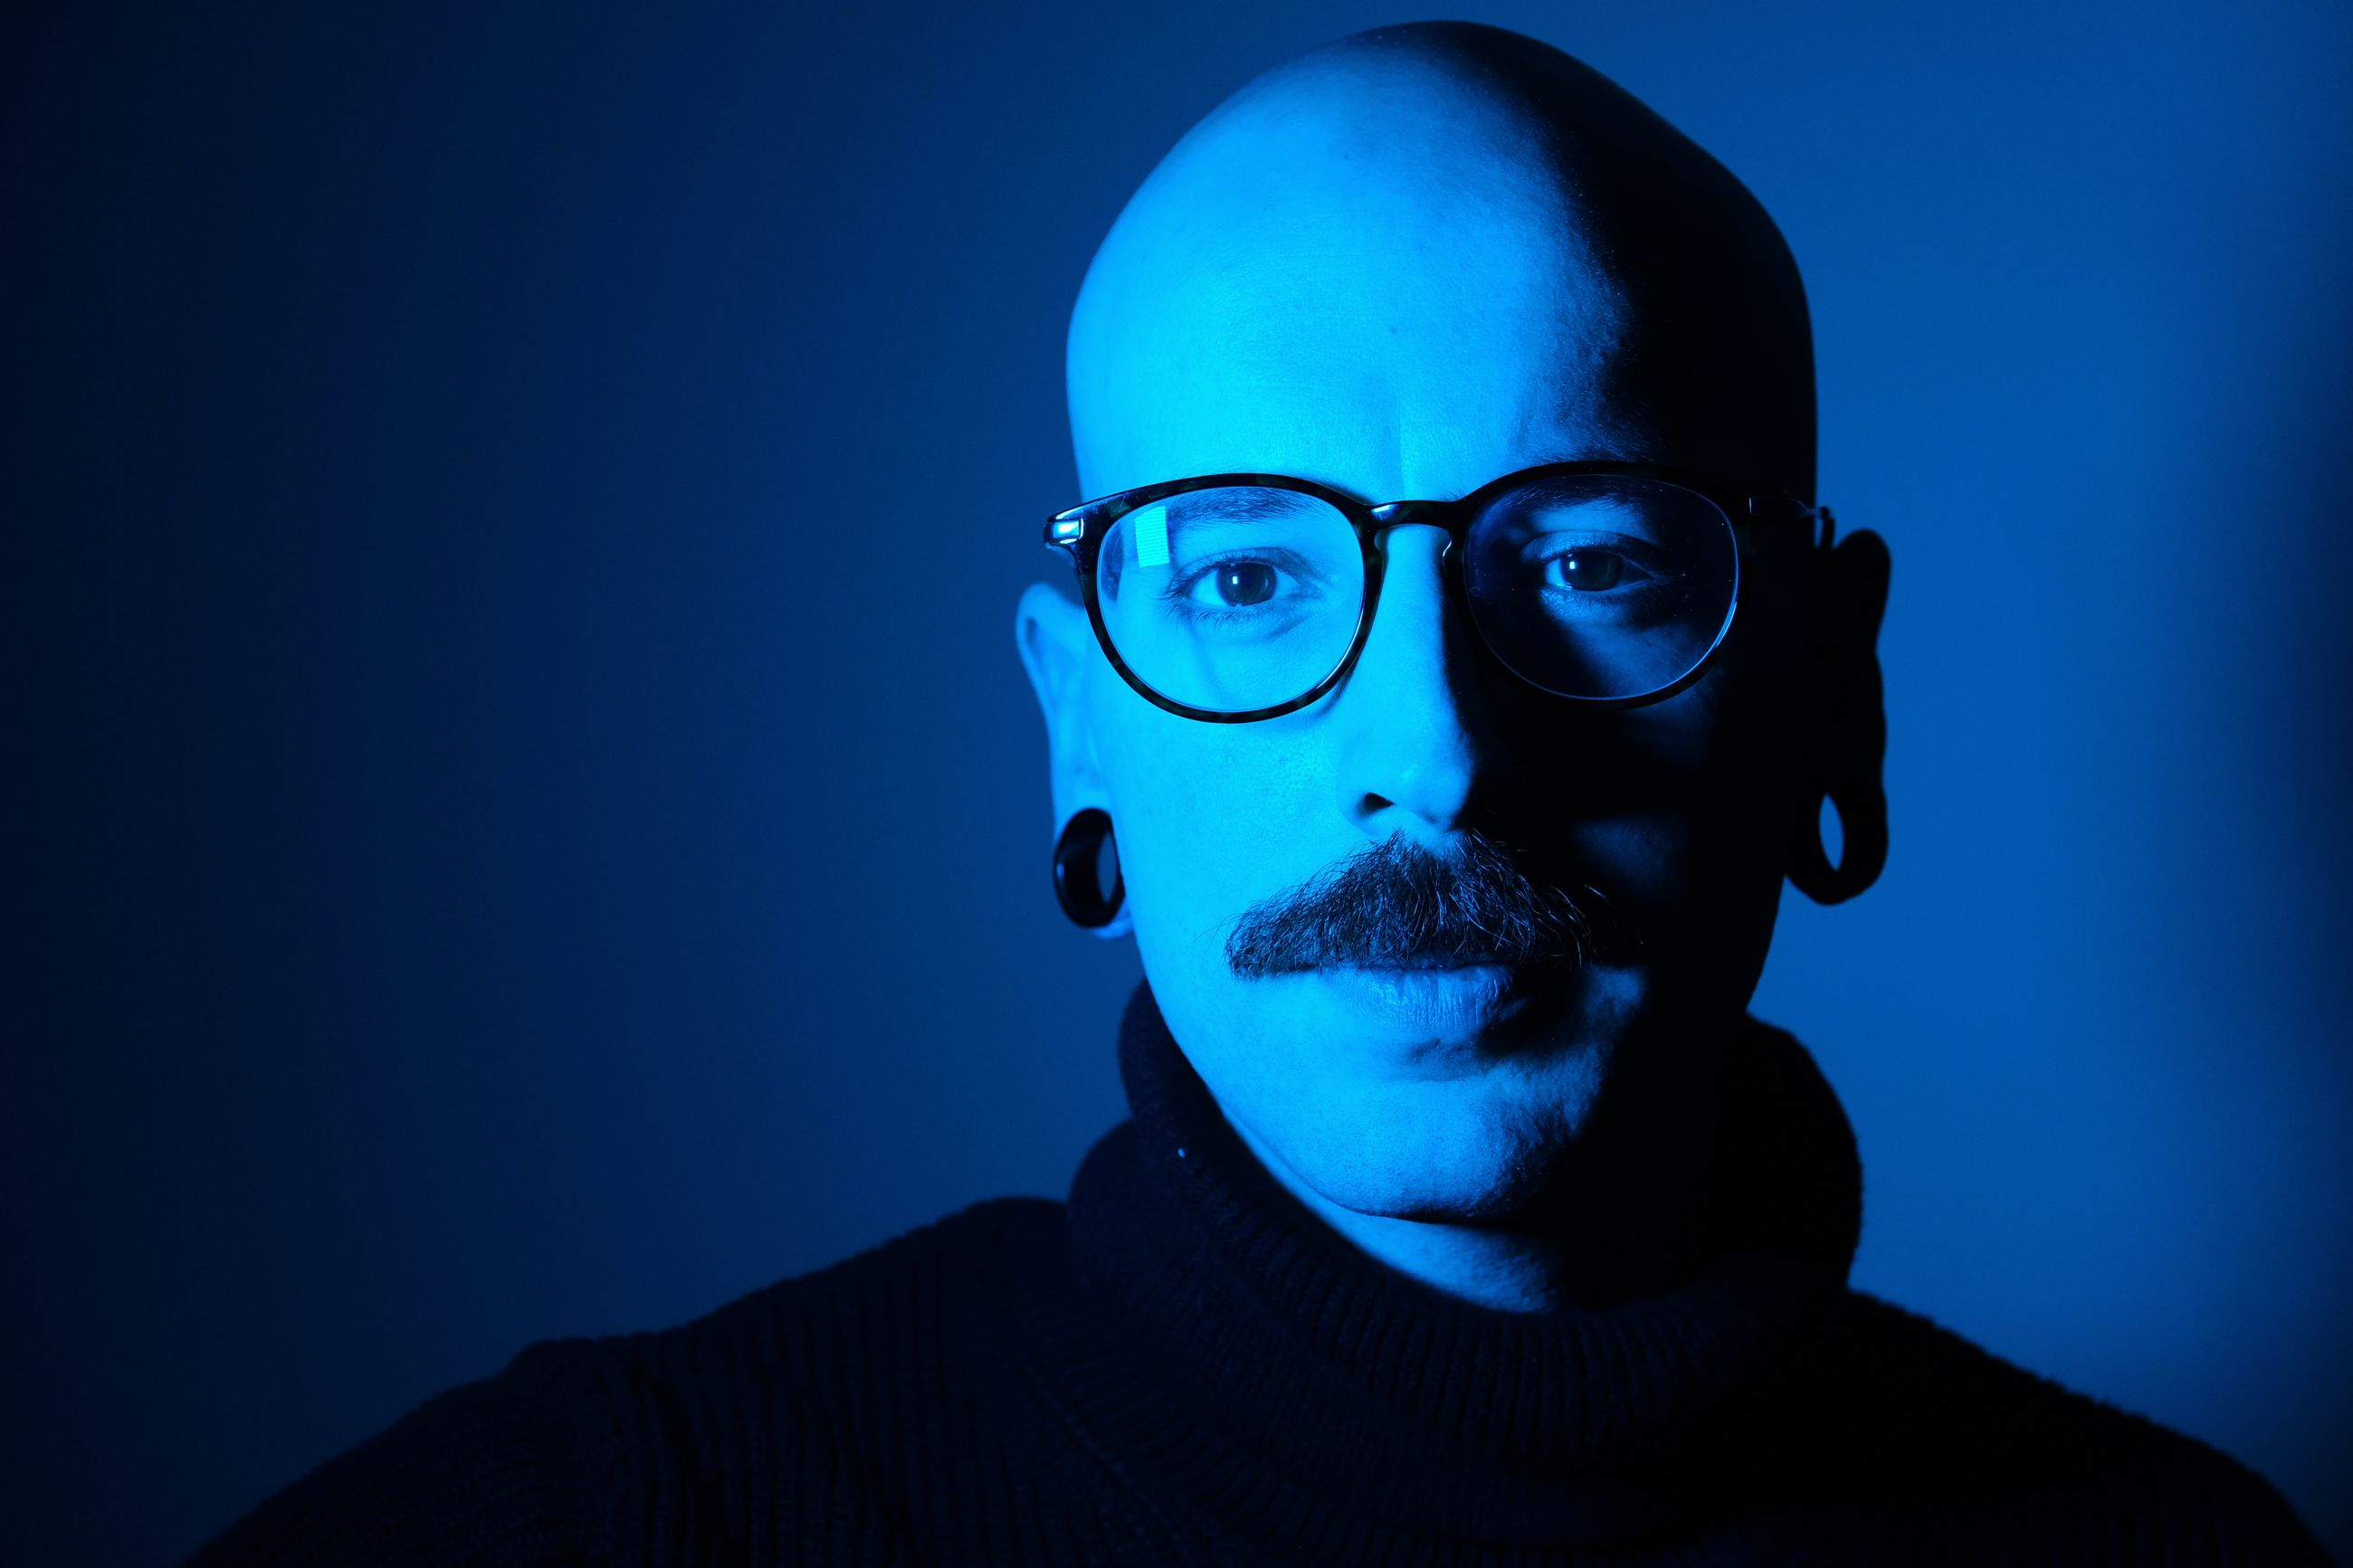 headshot, portrait, one person, blue, front view, glasses, real people, men, lifestyles, eyeglasses, young men, young adult, mid adult, indoors, leisure activity, illuminated, mid adult men, sunglasses, males, human face, contemplation, blue background